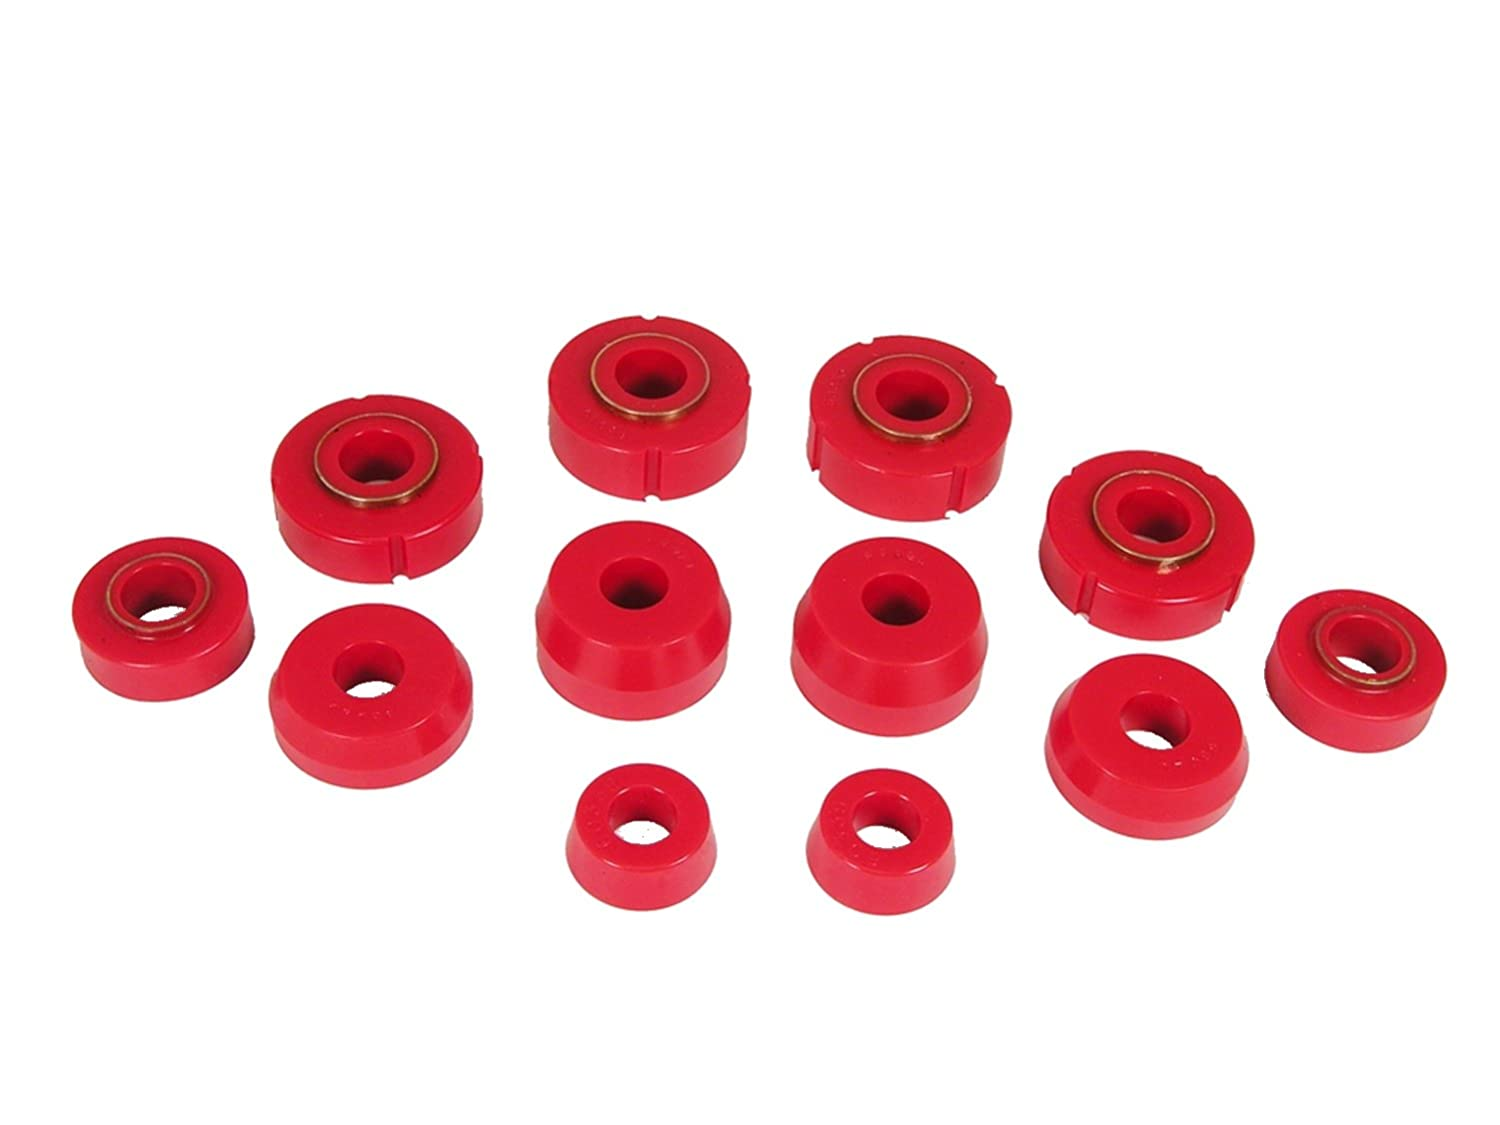 Prothane 6-110 Red Body and Cab Mount Bushing Kit - 12 Piece